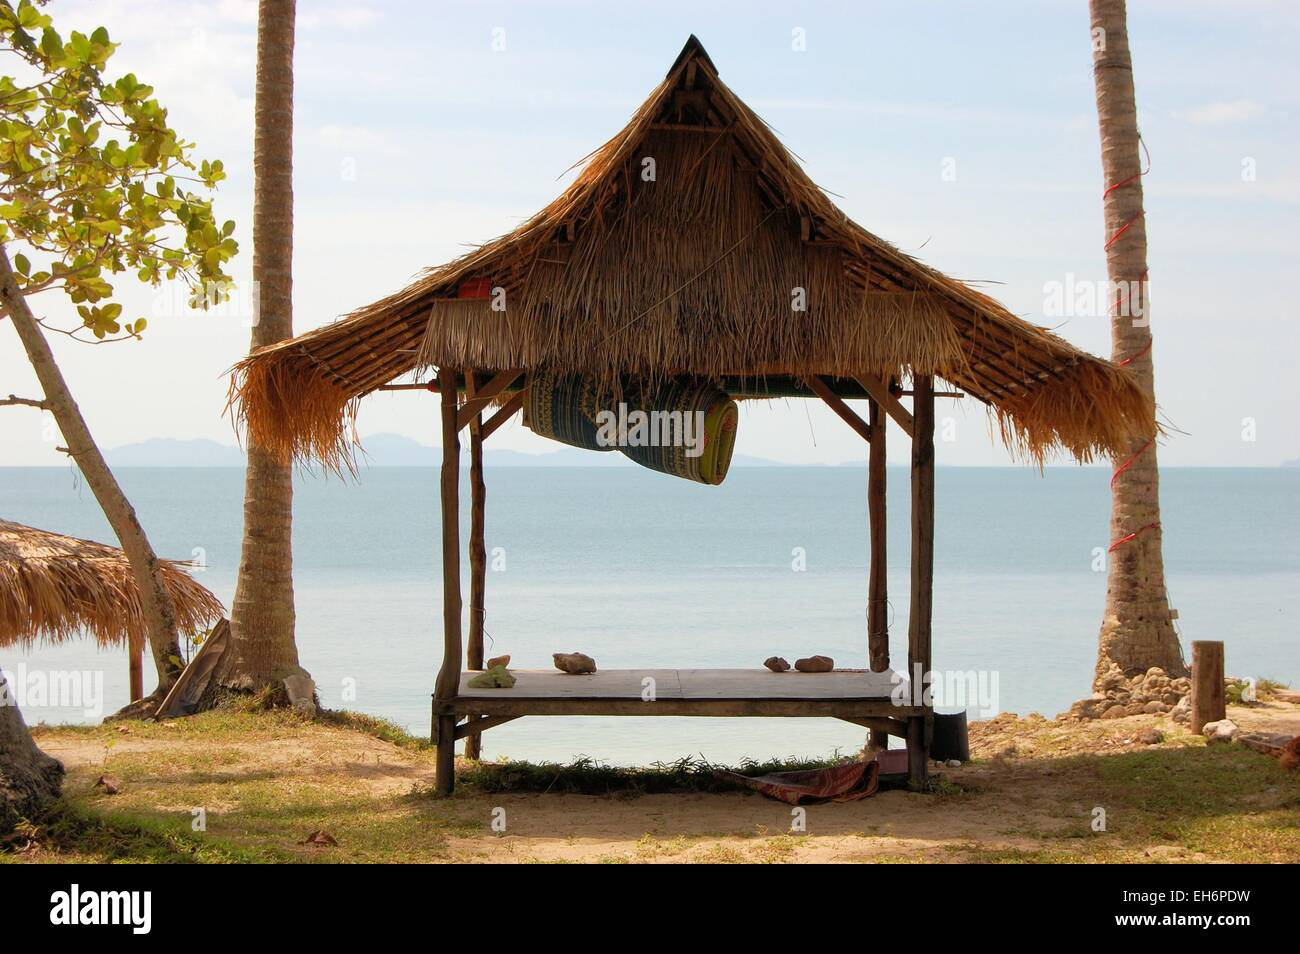 Tropical beach hut in Thailand - Stock Image